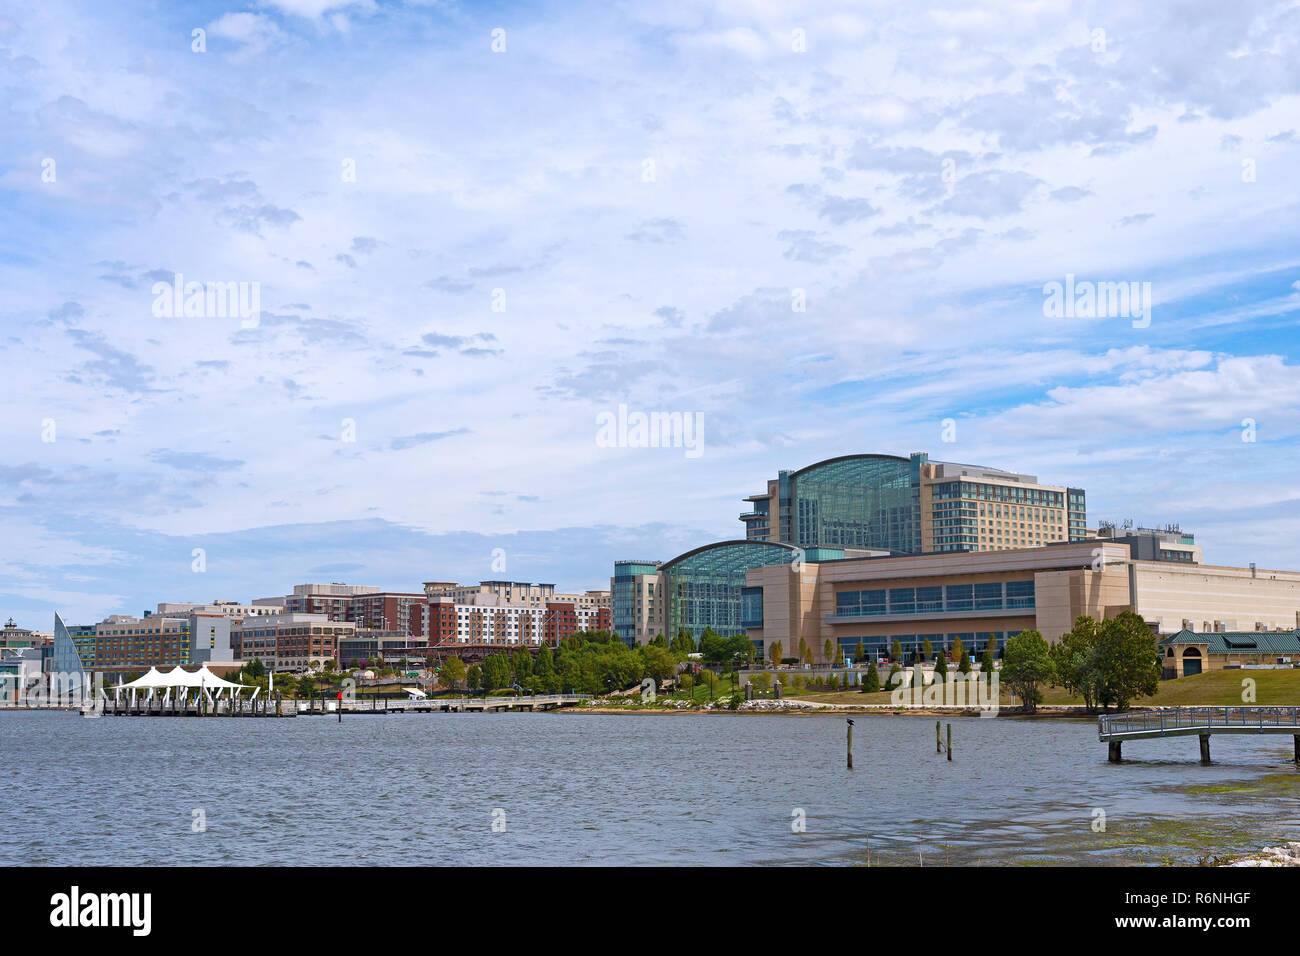 National Harbor waterfront panorama in Oxon Hill, Maryland, USA. Sun shines through cumulus clouds on National Harbor pier and modern buildings along  - Stock Image